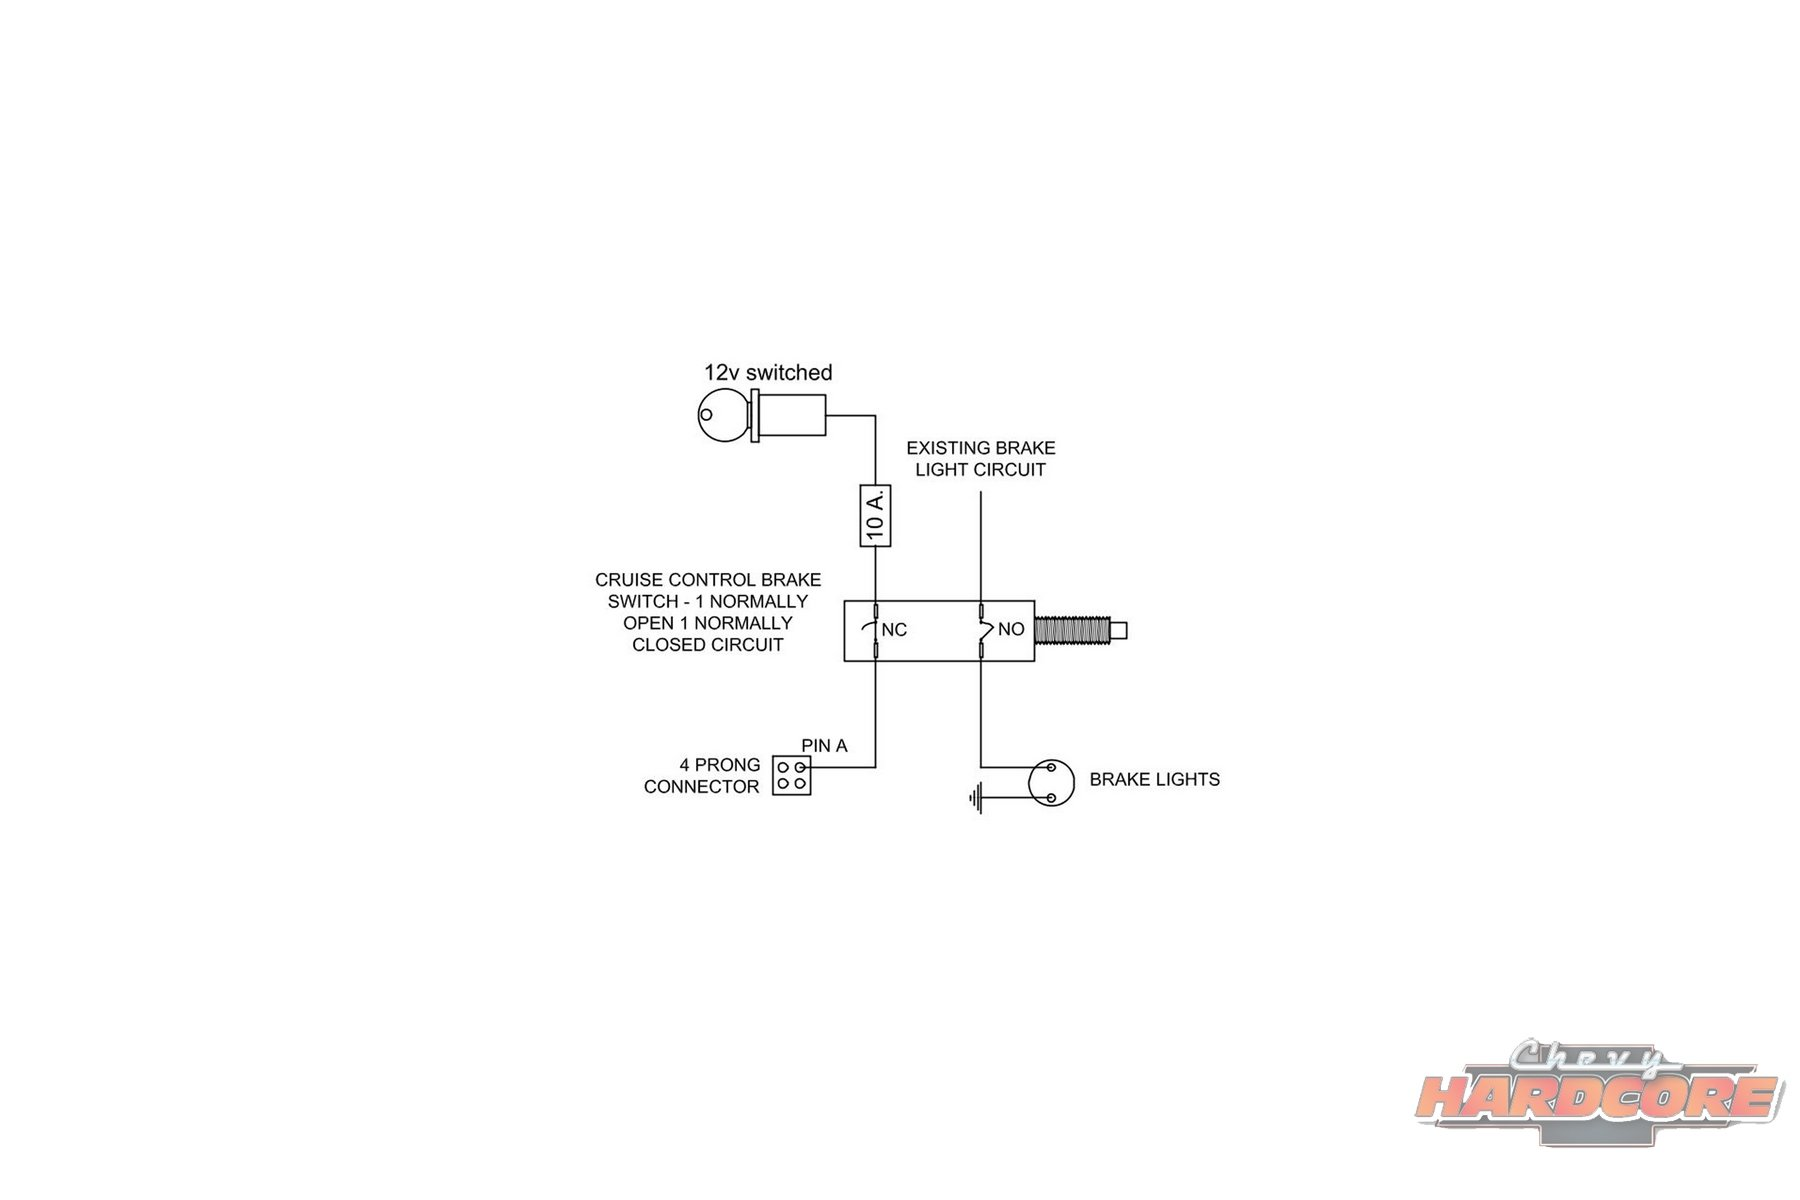 700r4 lock up converter wiring diagram overdrive options the 700r4 and the 4l60e debate goes on  the 700r4 and the 4l60e debate goes on